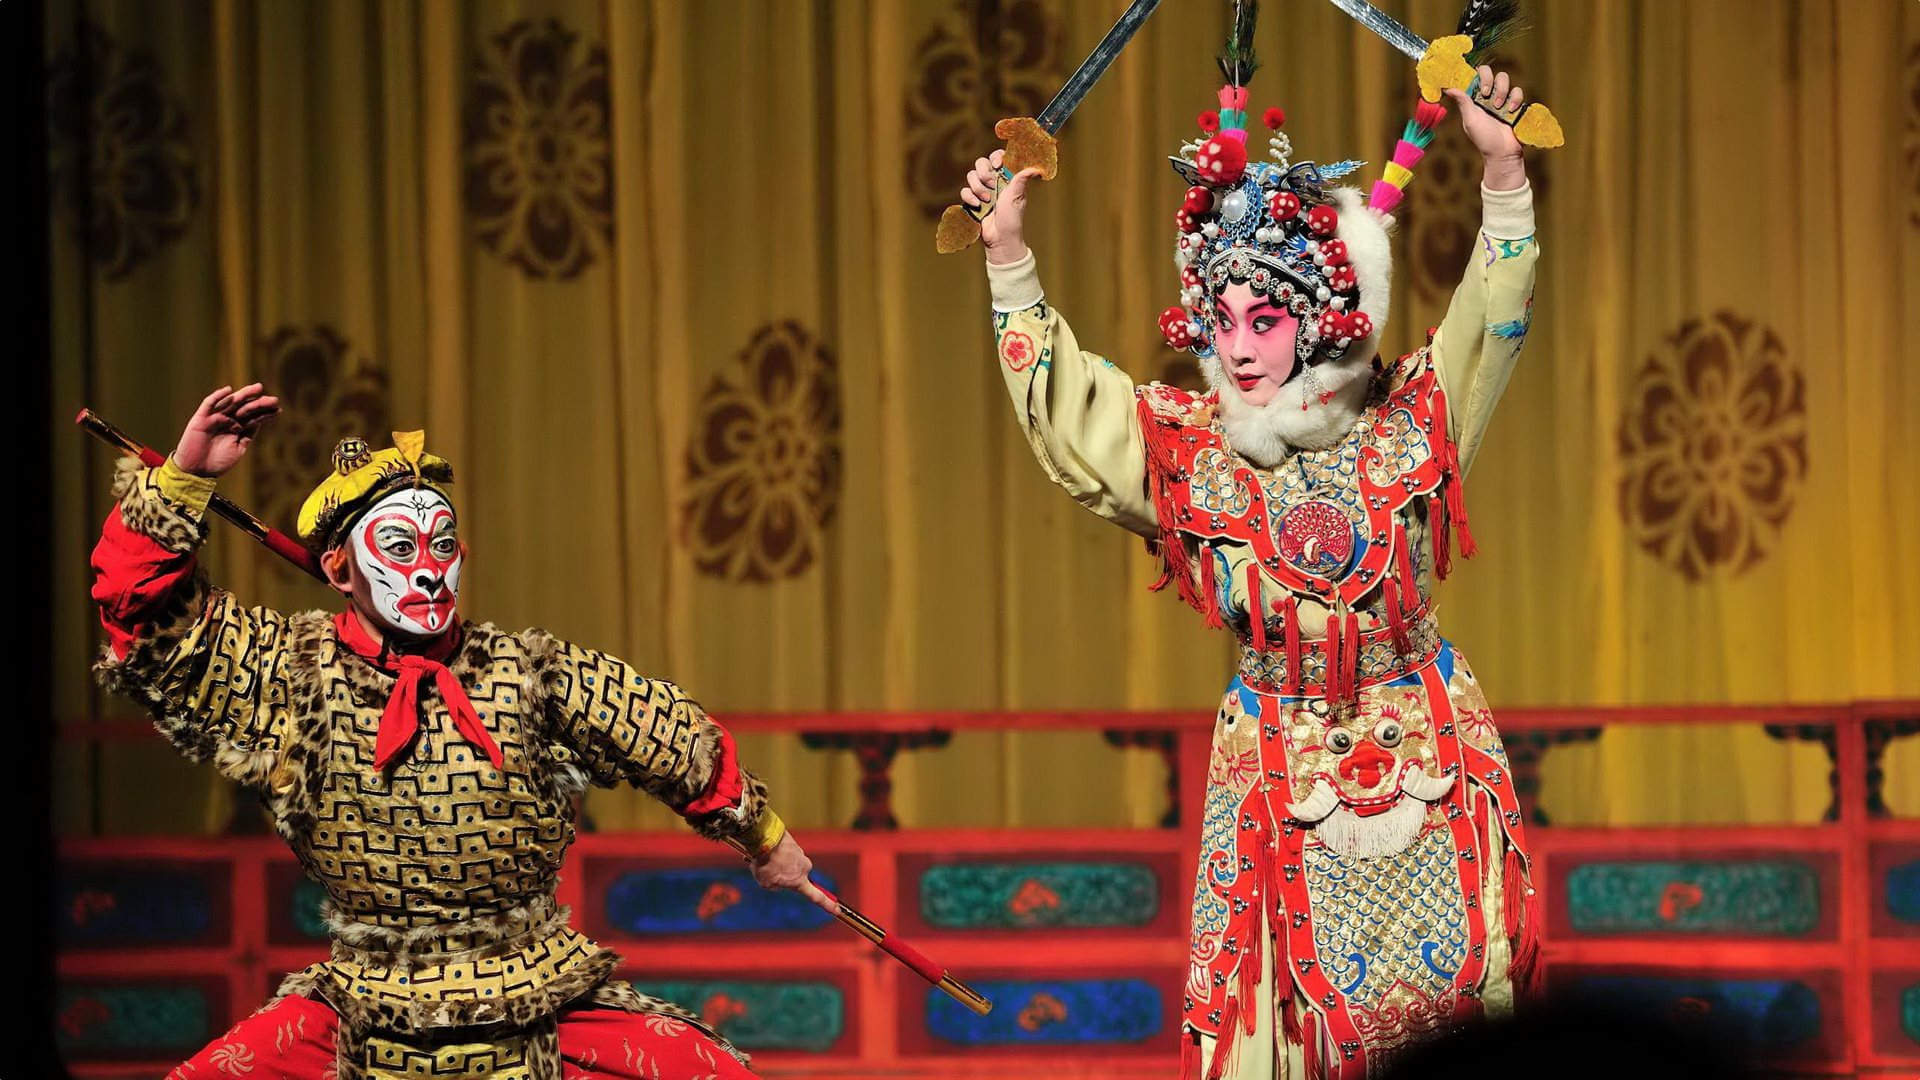 an analysis of the peking opera of the 19th century Deconstructing peking opera: tears of barren hill on the contemporary stage bell yung century were undertaken for the sake of greater audience appeal.